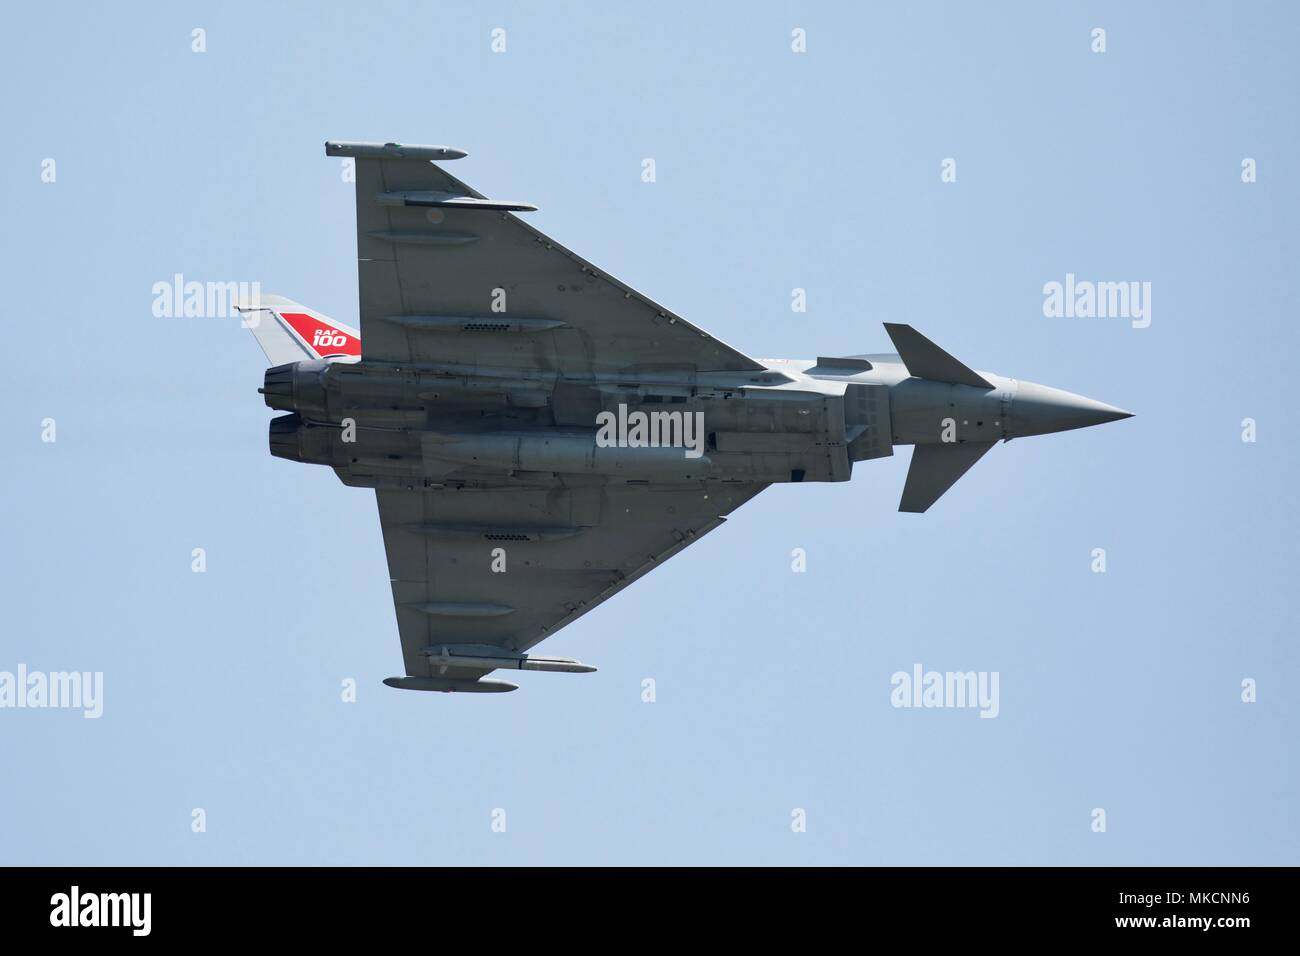 RAF Typhoon FGR4 fighter jet flying at Shuttleworth Season Premiere celebrating the Centenary of the Royal Air Force - Stock Image